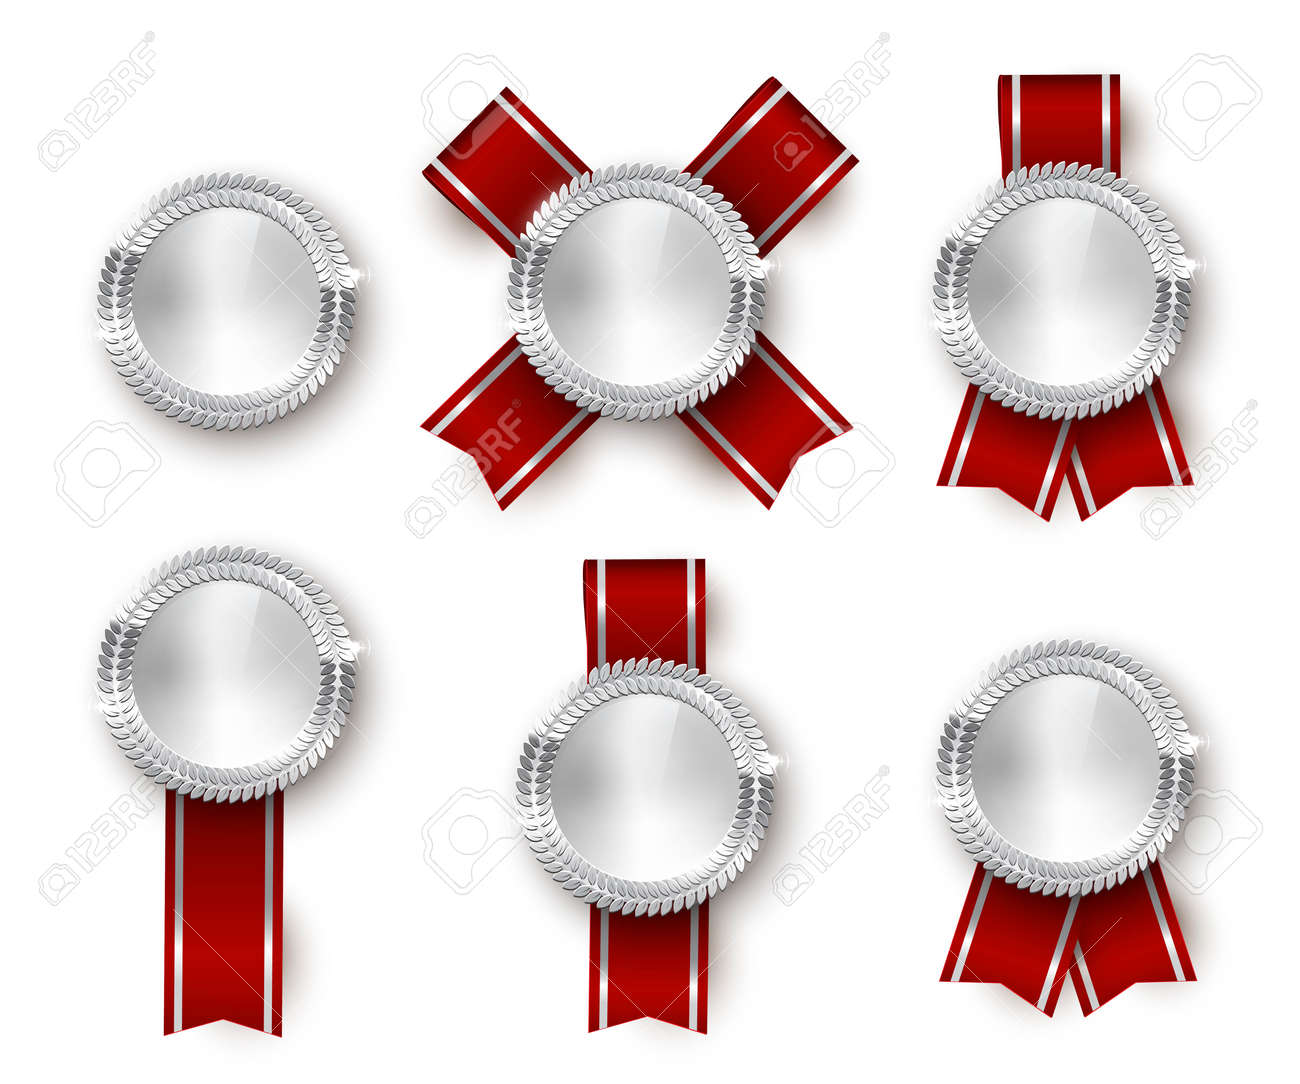 Award medal 3d realistic vector color illustration set. Reward, silver medals with red ribbons. Certified product. Quality badges, emblems with red ribbon. Winner trophy. Isolated design element set. - 164671086